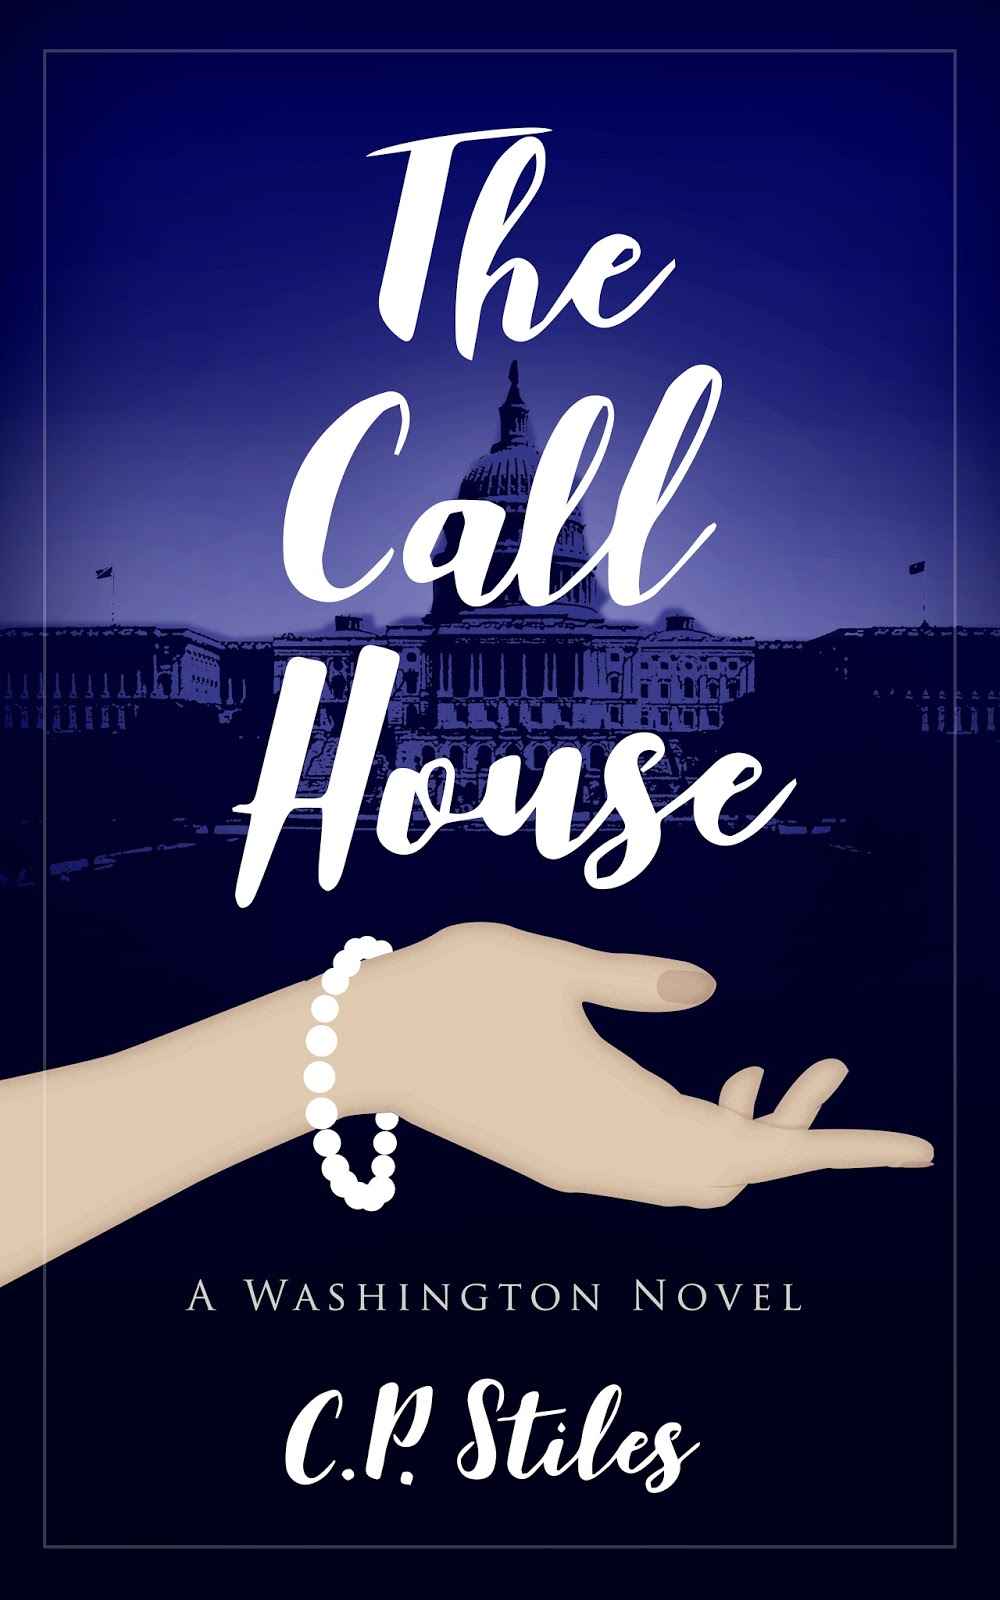 a place to call home by amy schisler reviews discussion a place to call home book A war on vice In Washington, DCu2014a city constantly awash in scandals? Hard  to believe, but it really happened. Only not exactly the way itu0027s told here.